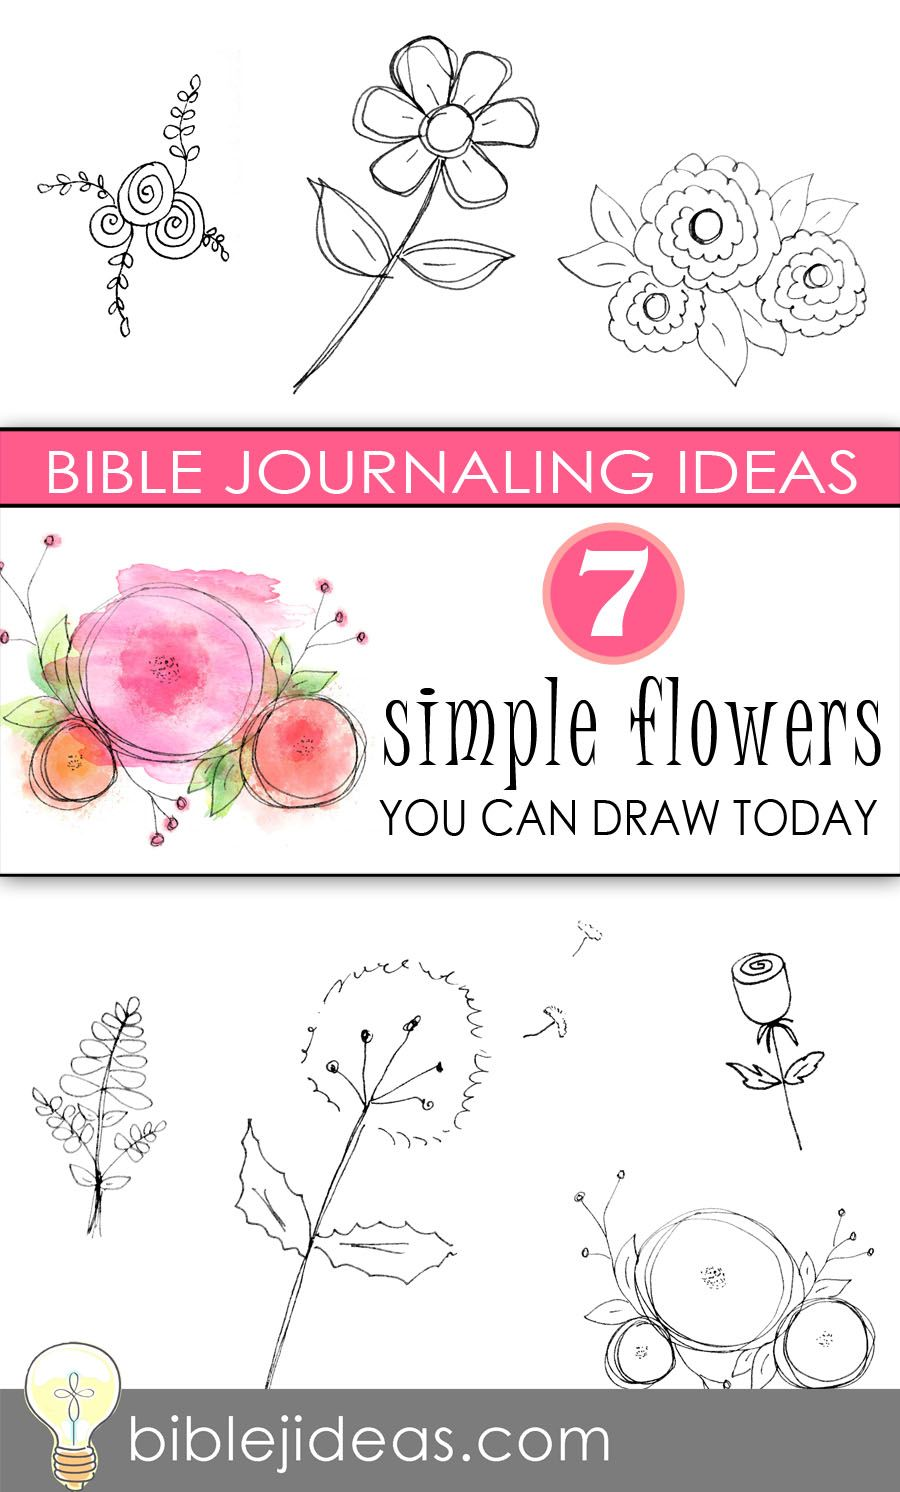 Bible Journaling Ideas: 7 Simple Flowers You Can Draw Today